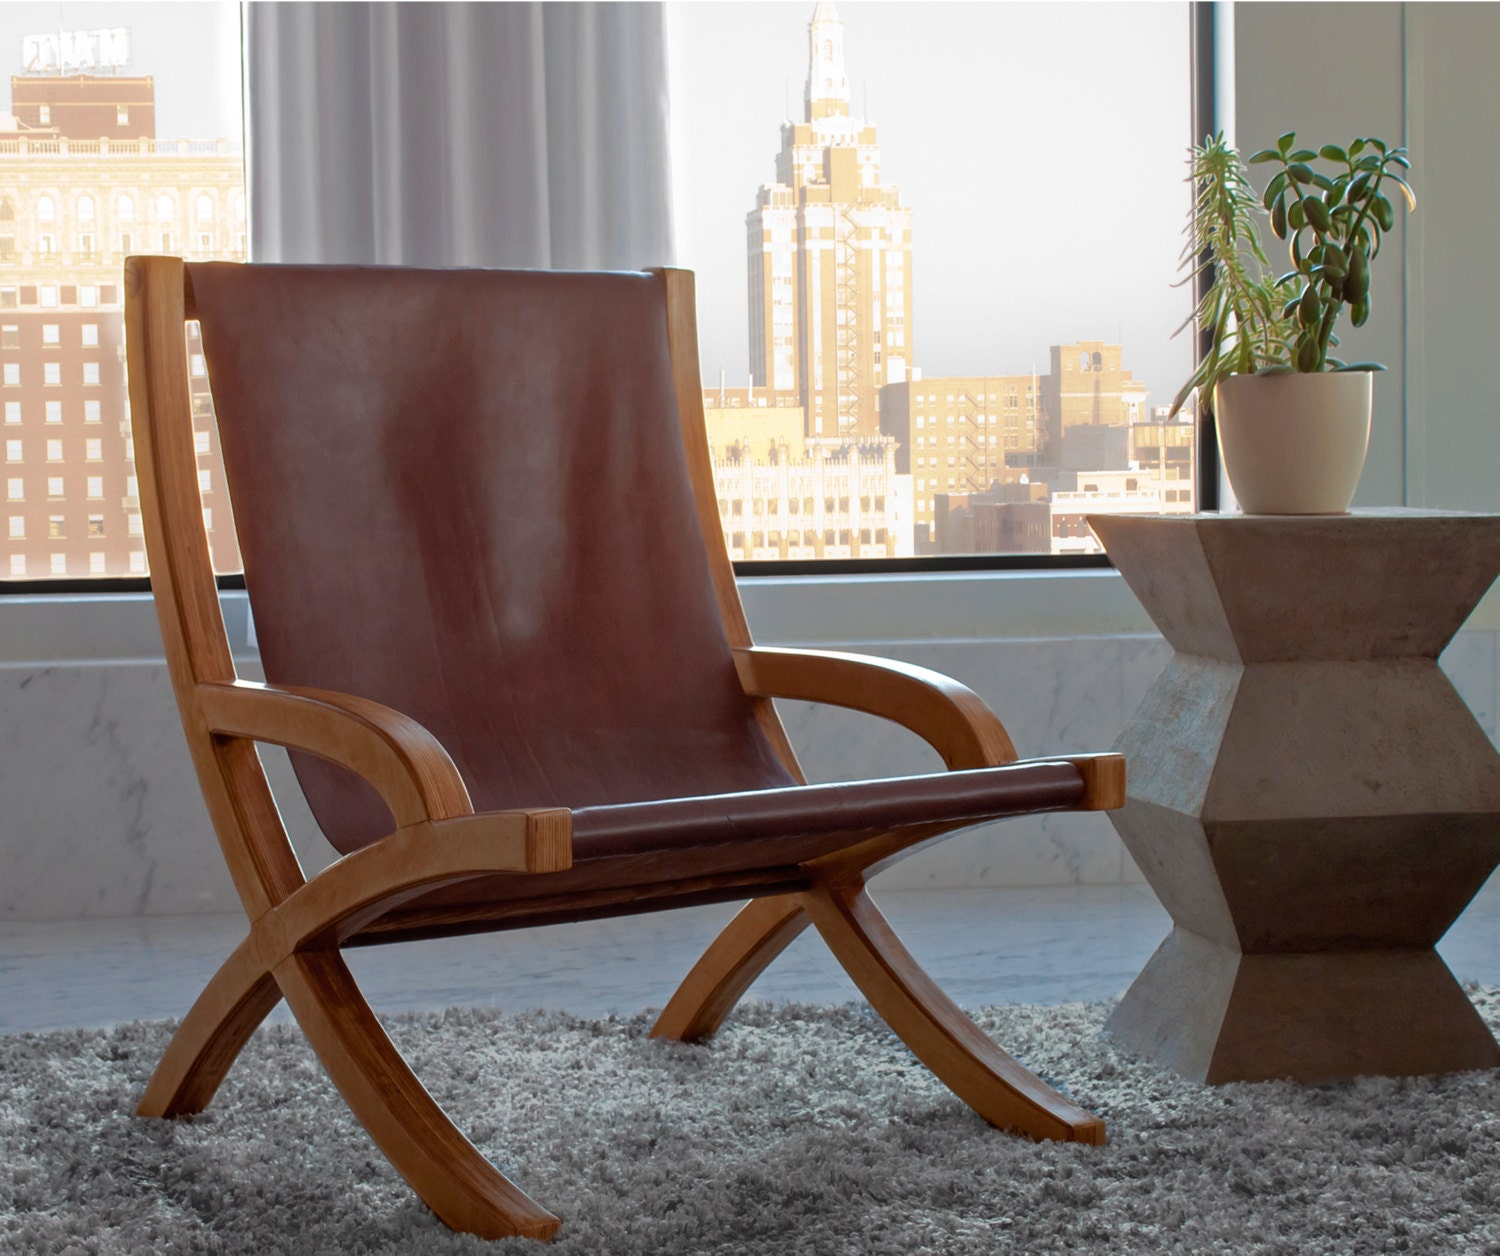 design heymans sling chair leather angle resized